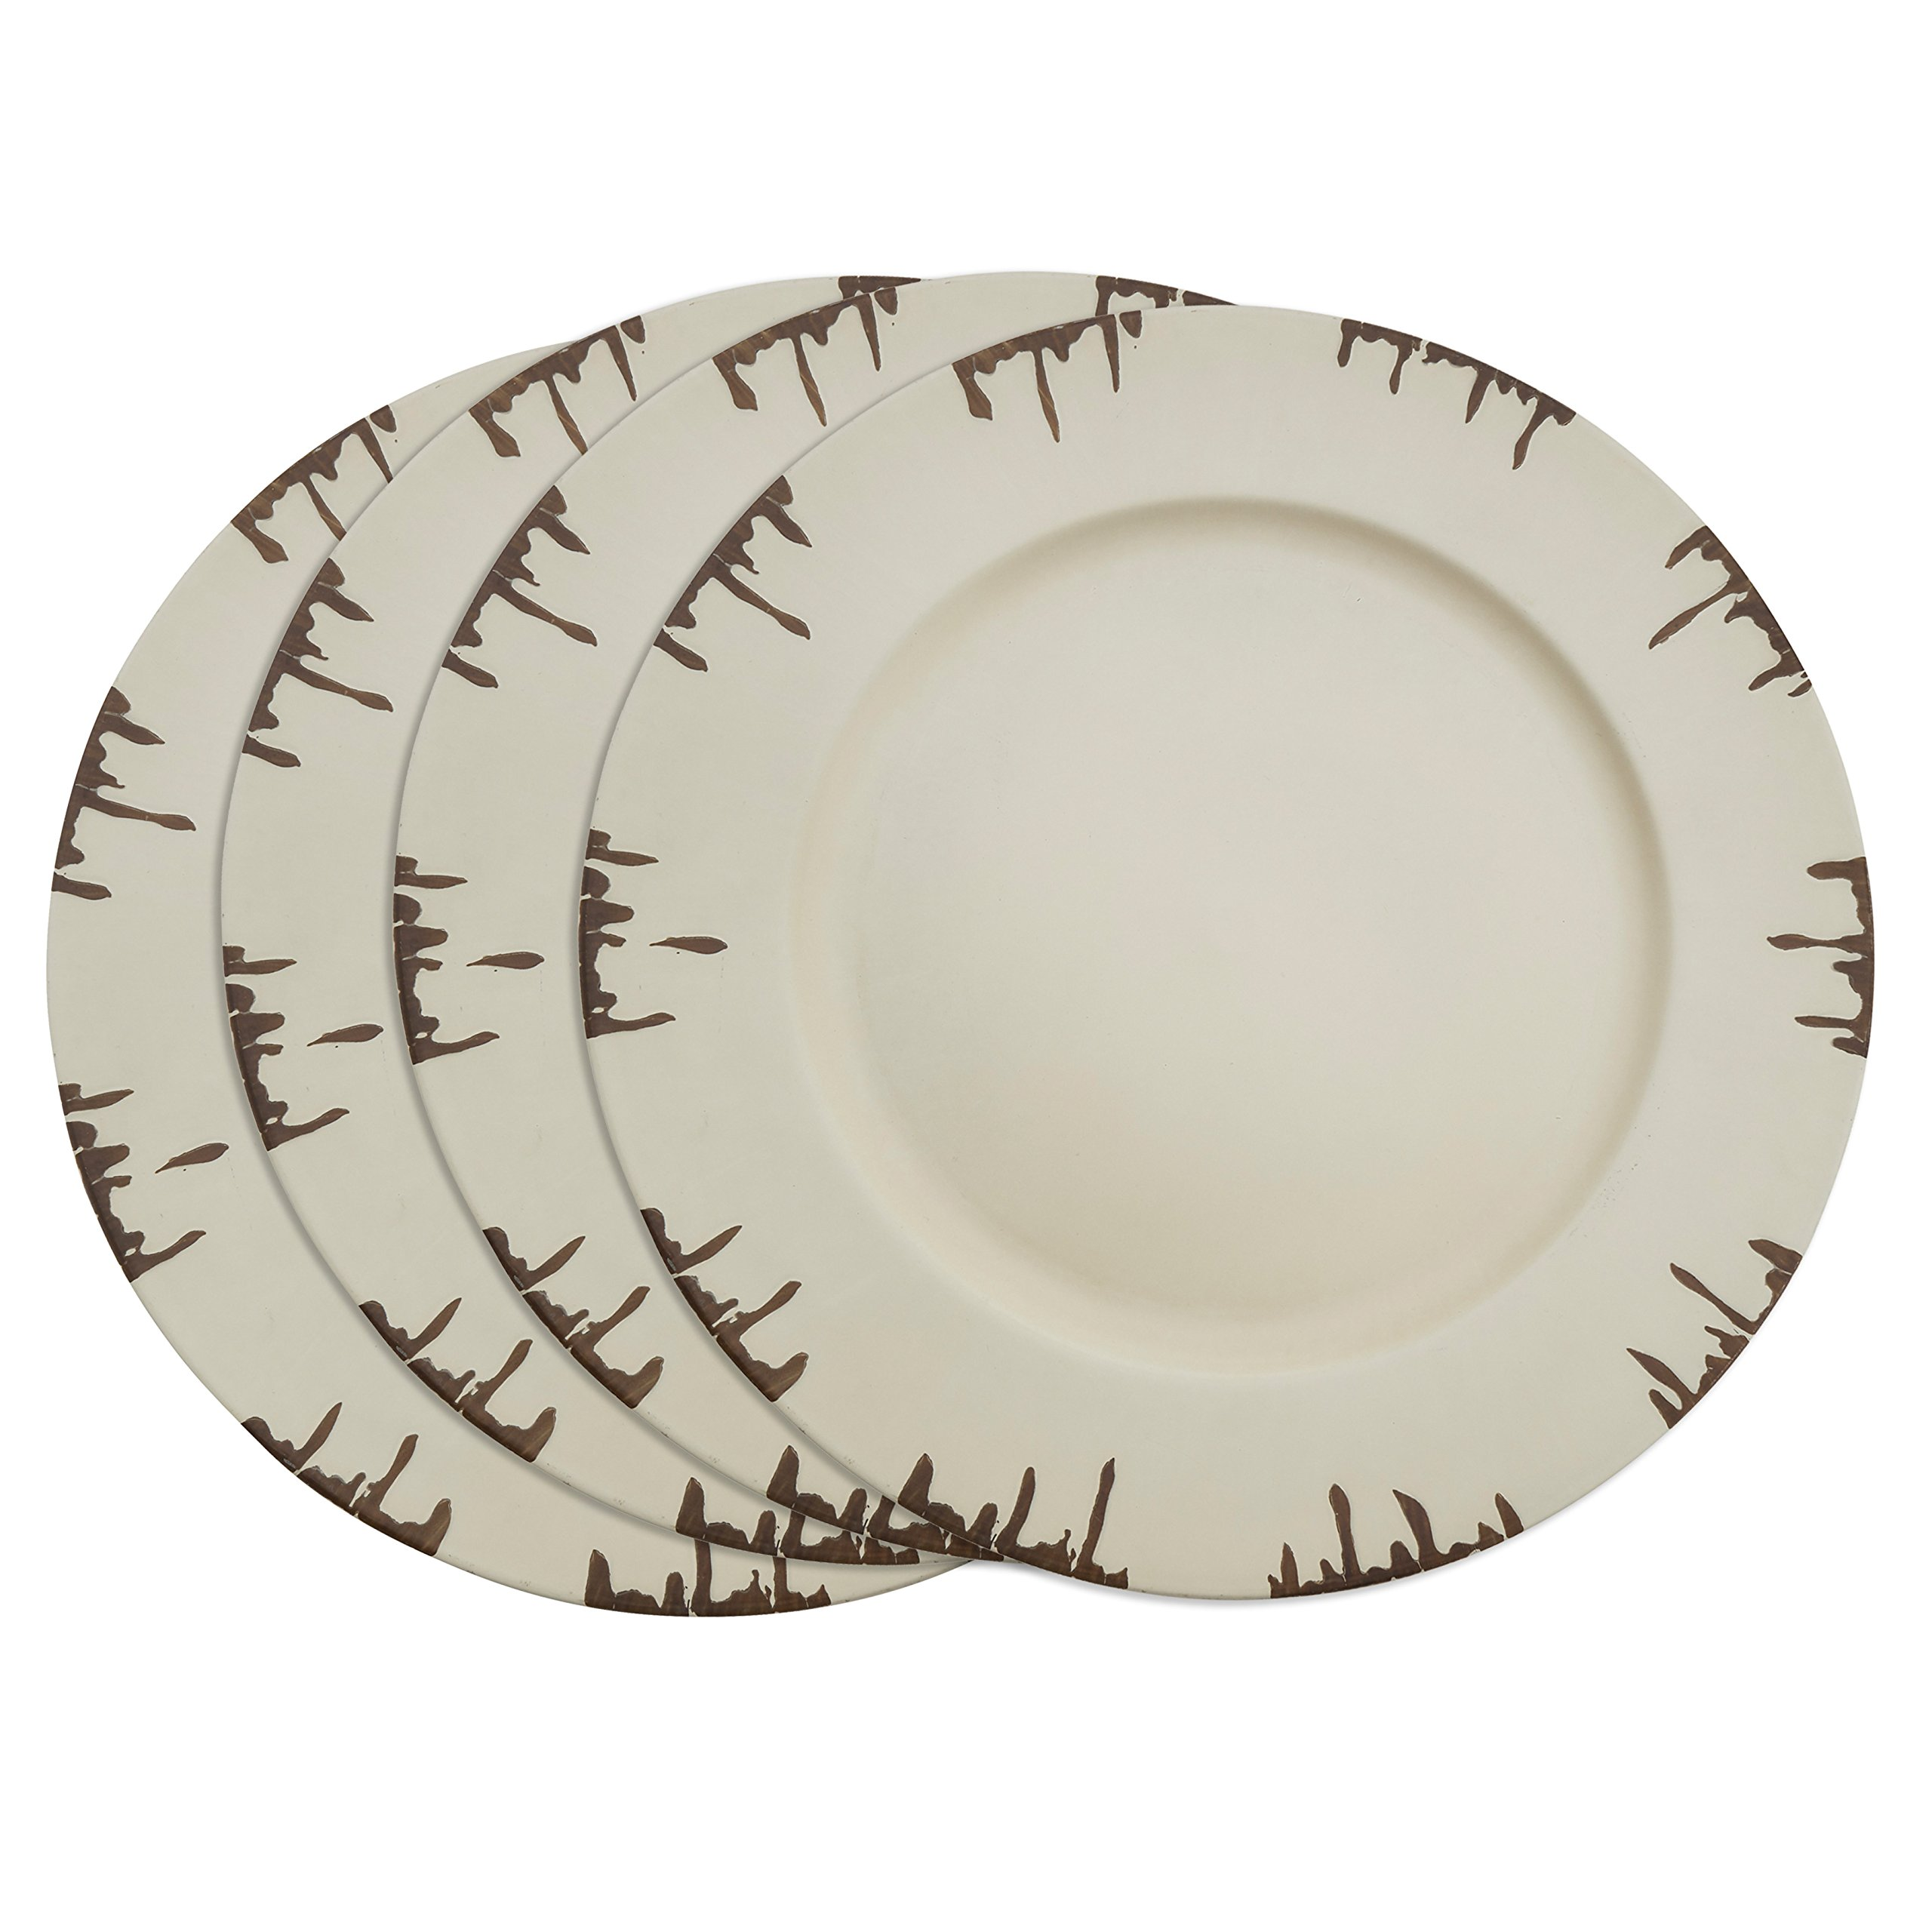 SARO LIFESTYLE Sousplat Collection Distressed Design Detail Charger Plate, 13'', Ivory